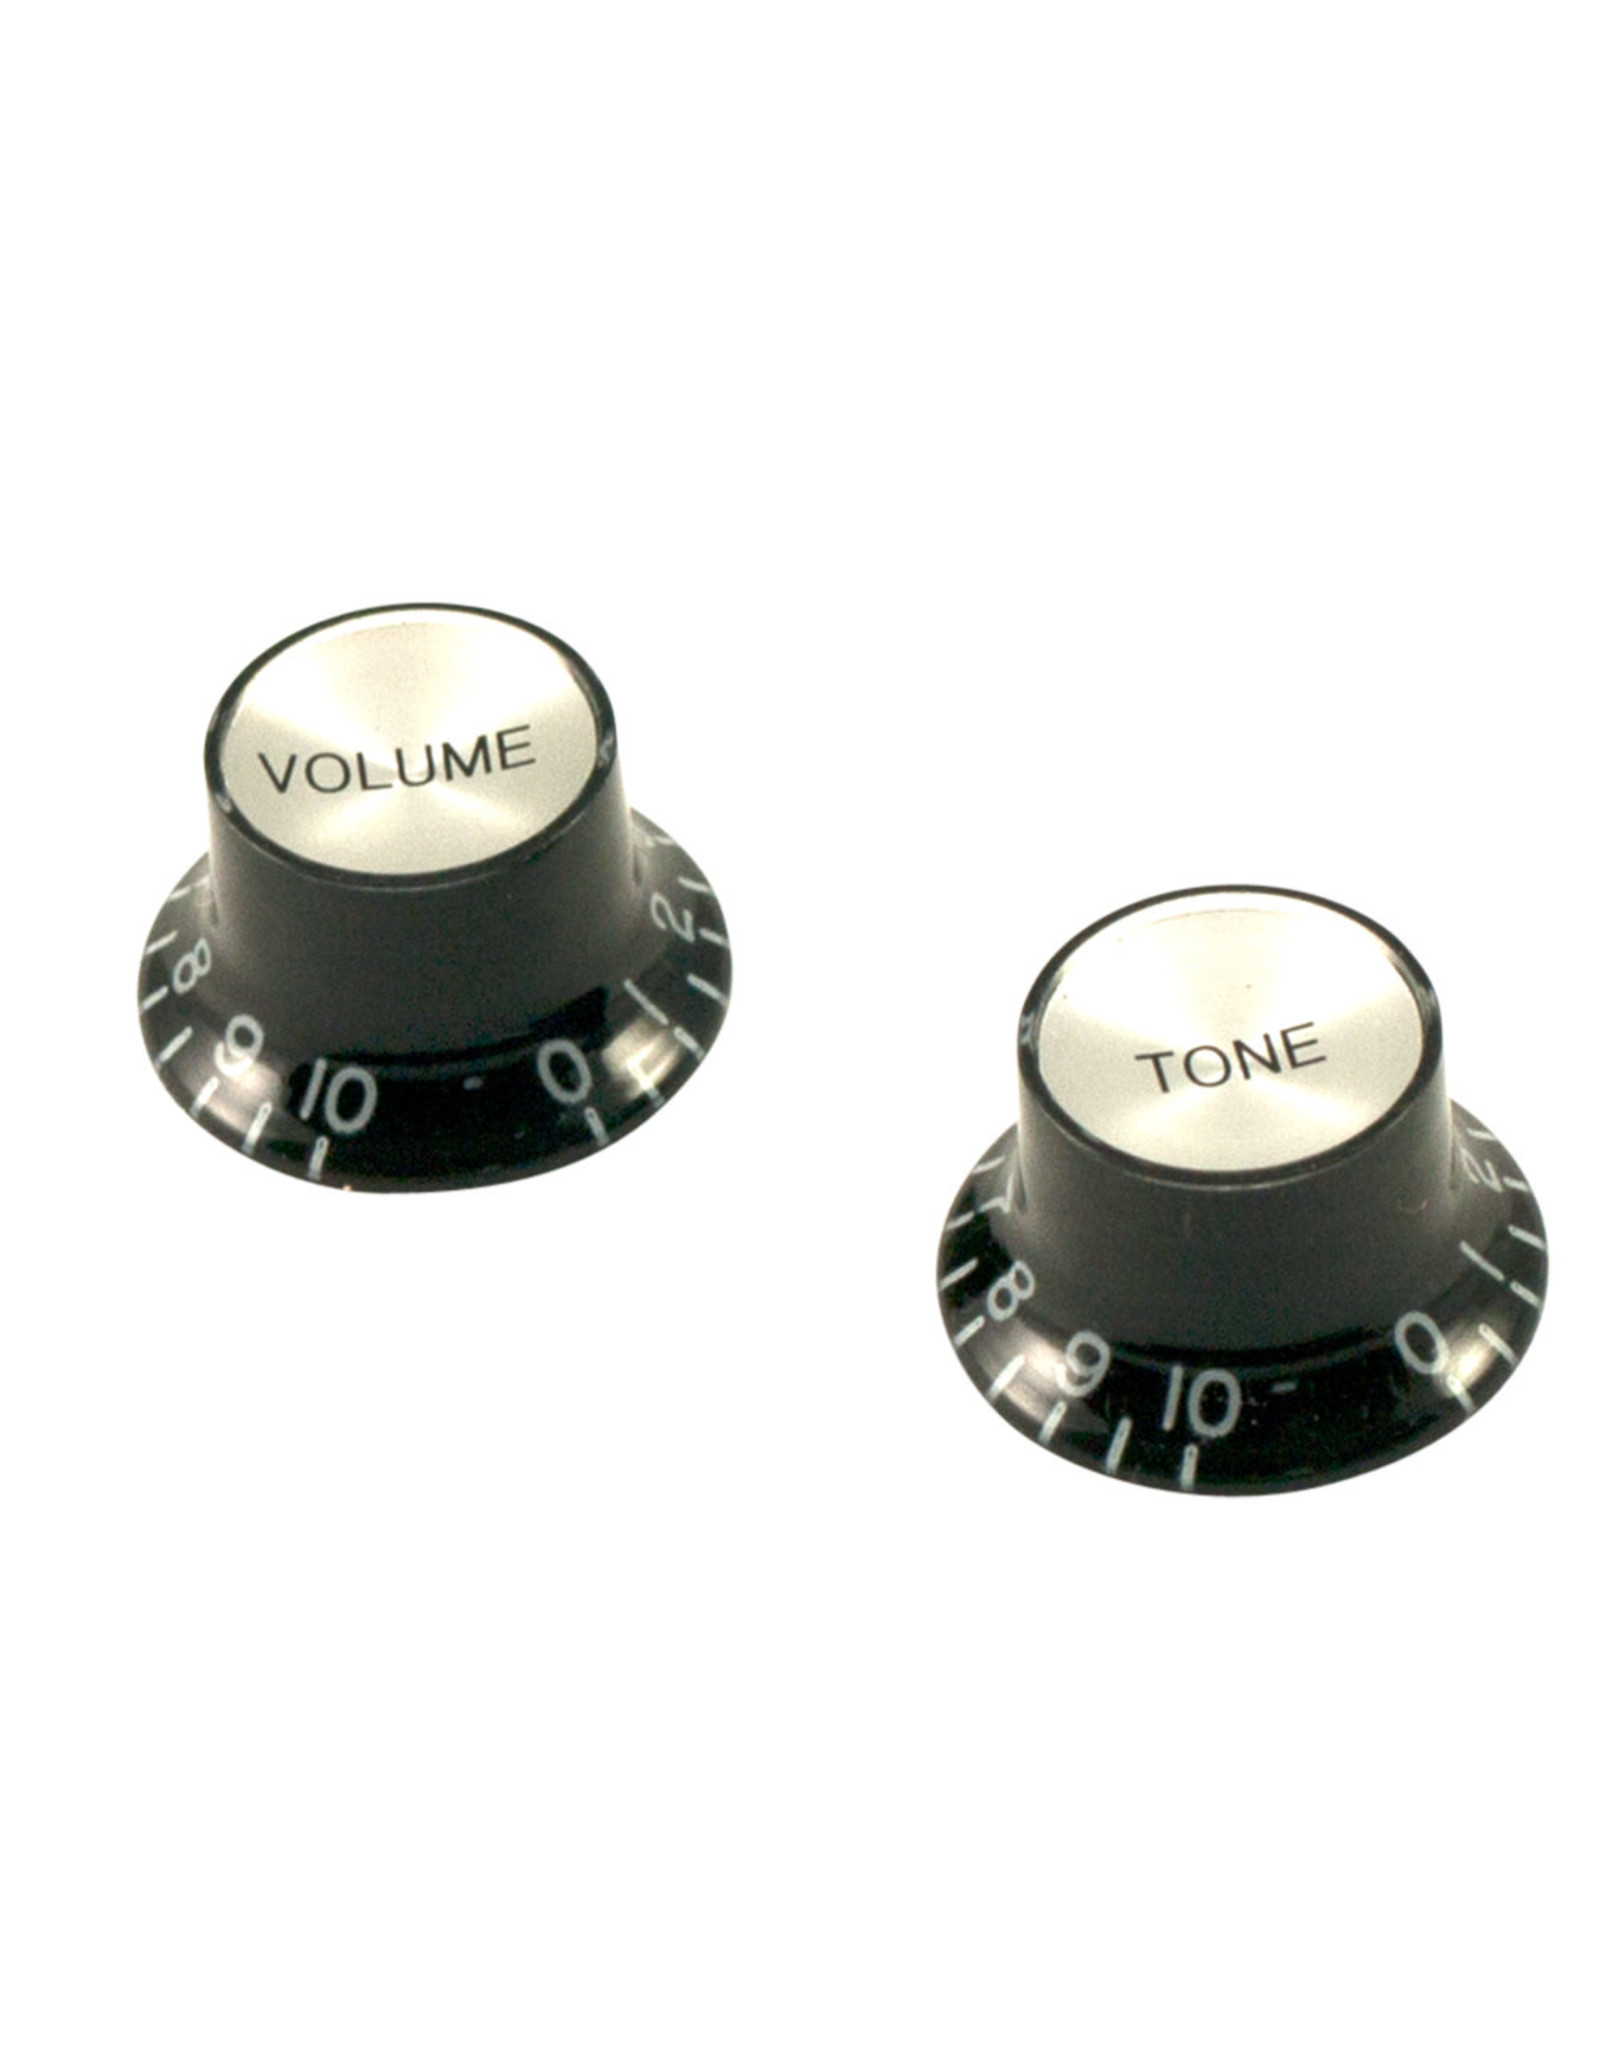 WD Music Products WD® Bell Knob Set Of 2 Black w/Silver Top (One Volume, One Tone)